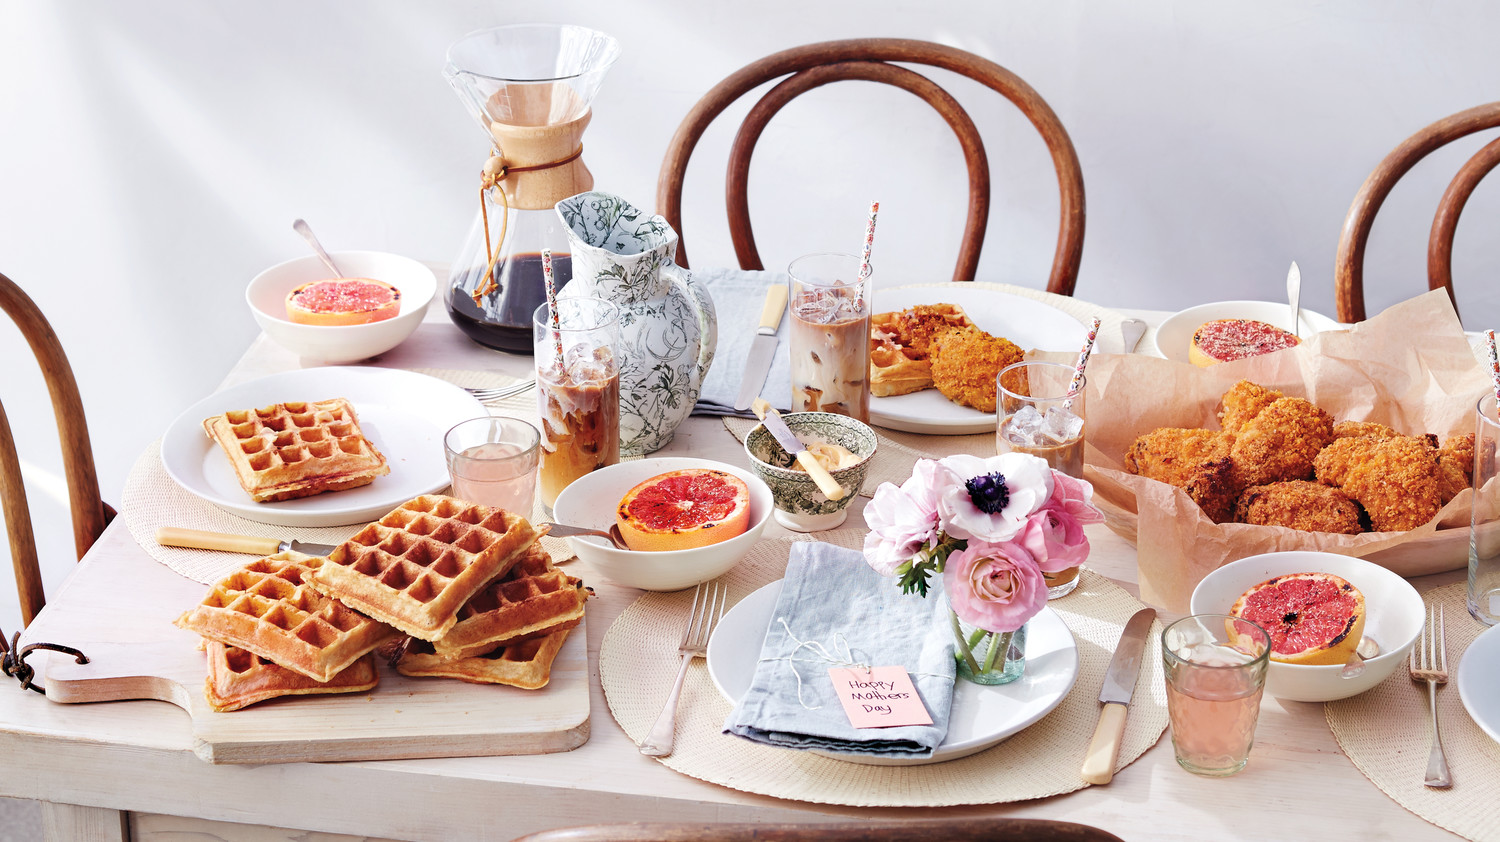 Brunch Table Decorations Best Interior 2018: brunch table decorations